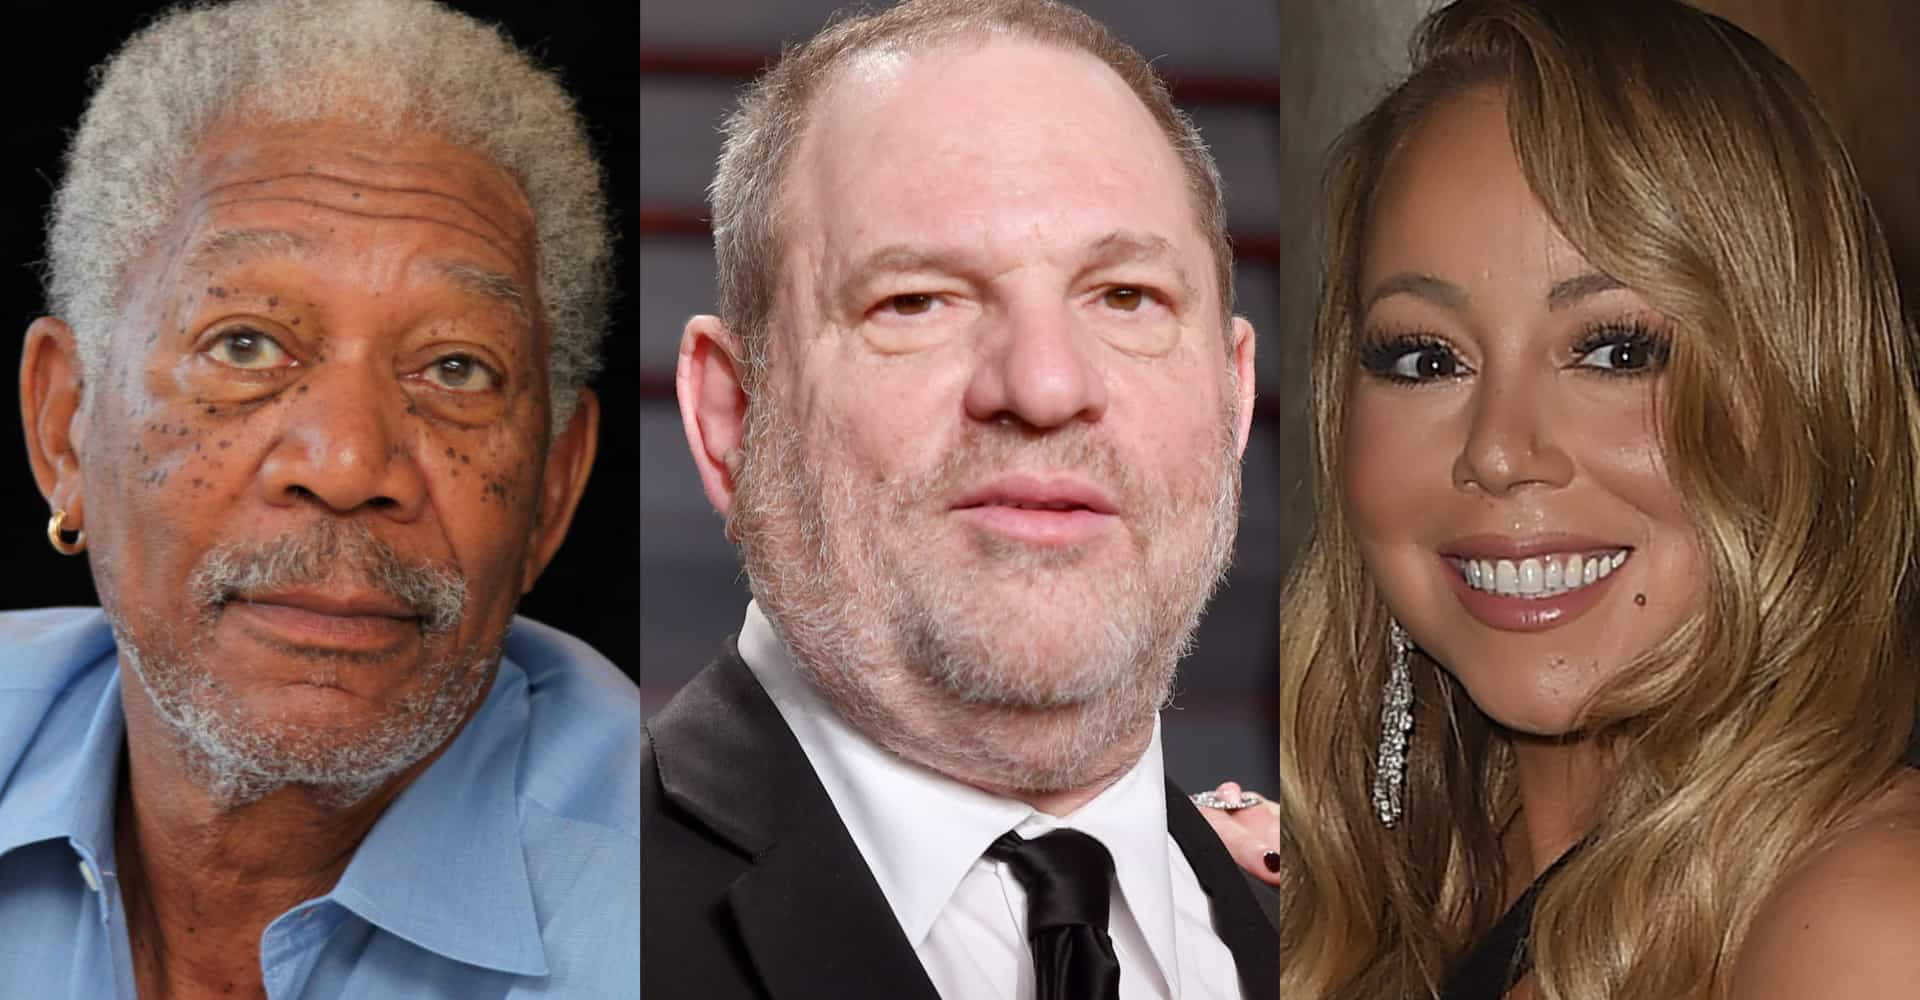 Powerful public figures who have been accused of sexual misconduct